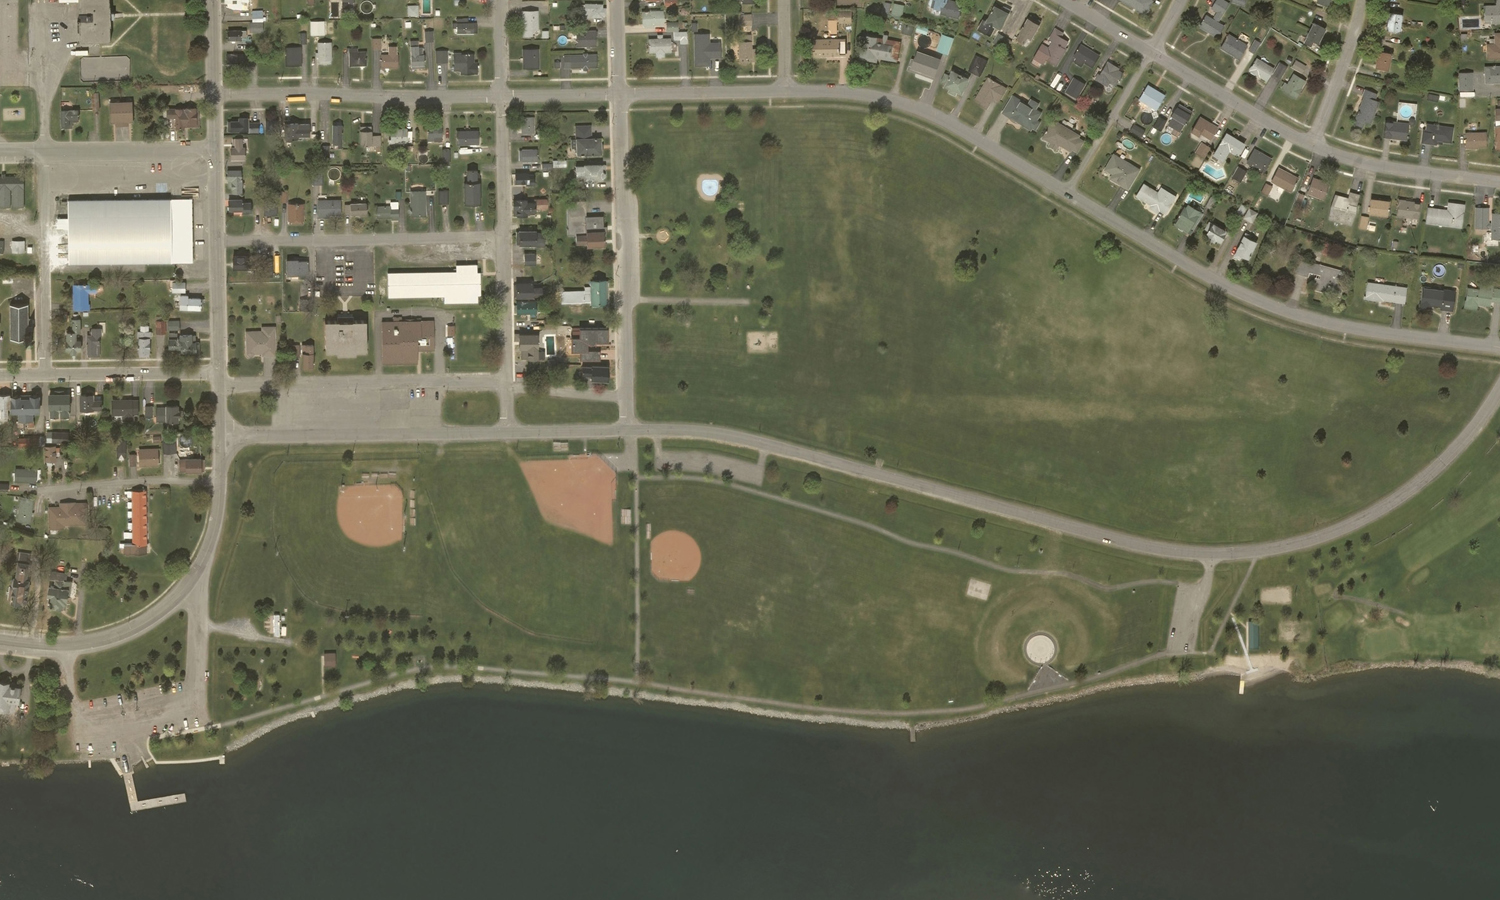 Morrisburg Waterfront Park - Existing Condition (Source: Digital Raster Acquisition Project for the East - Orthophotos Orthophotography © Aéro-Photo -1961- inc. 2008.)